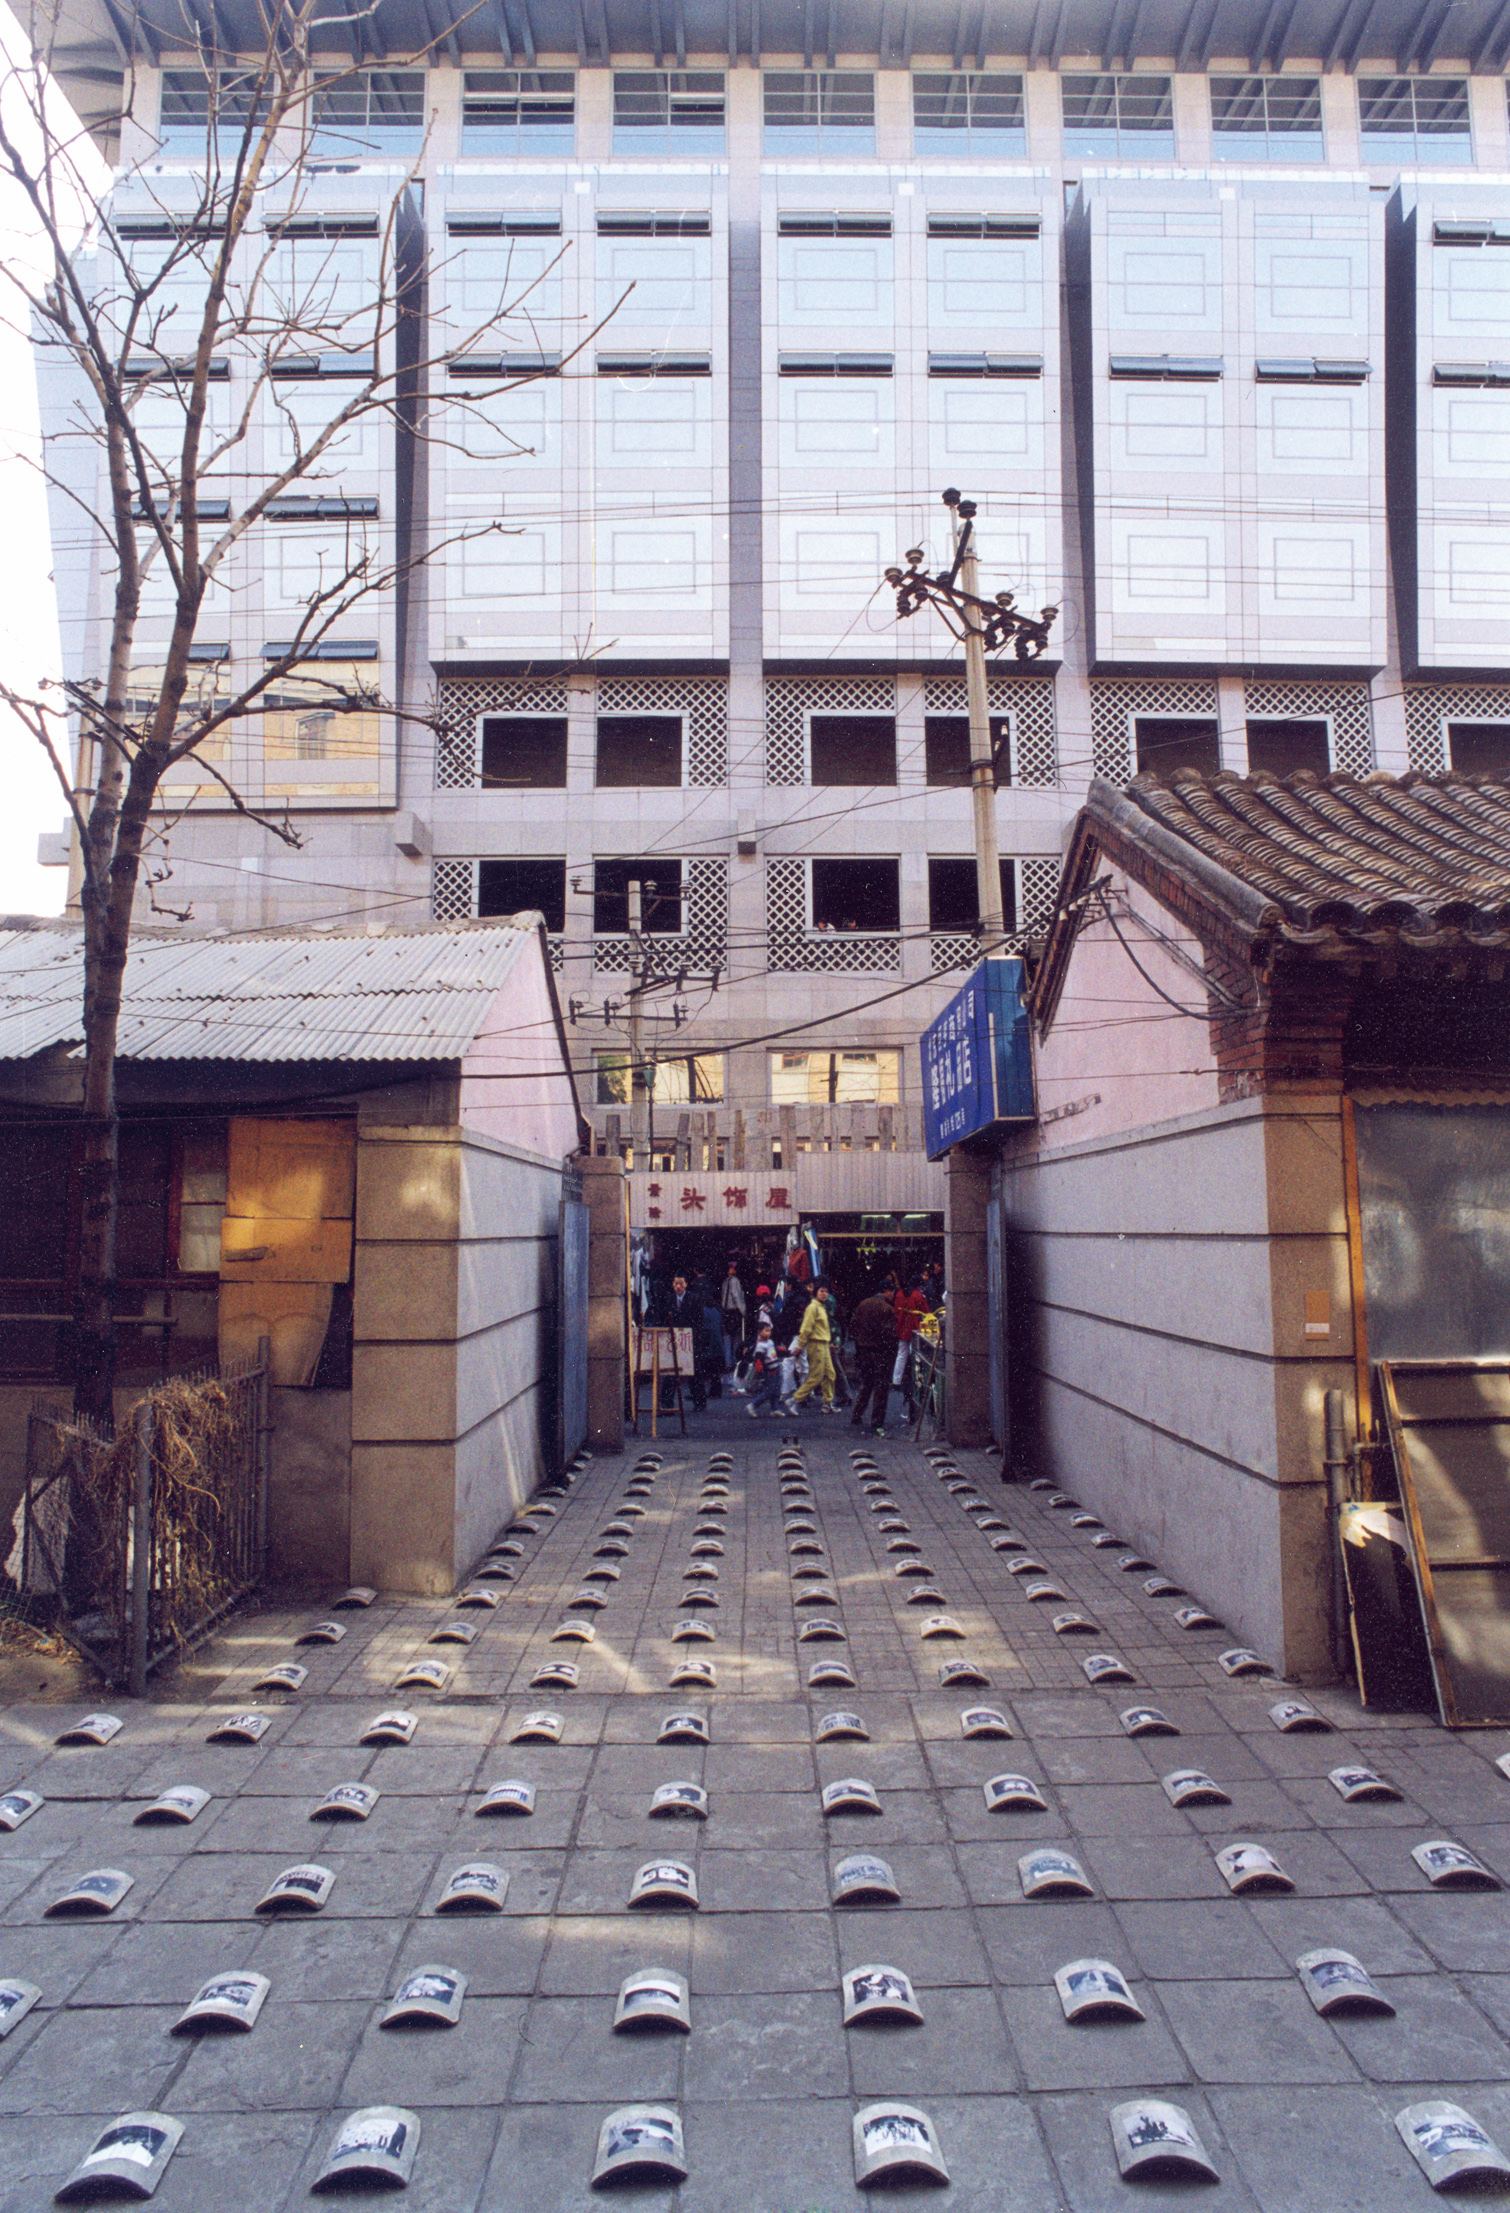 Yin Xiuzhen, Transformation, 1997. Installation view, Beijing, 1997. Photo courtesy of the artist and Pace Gallery.